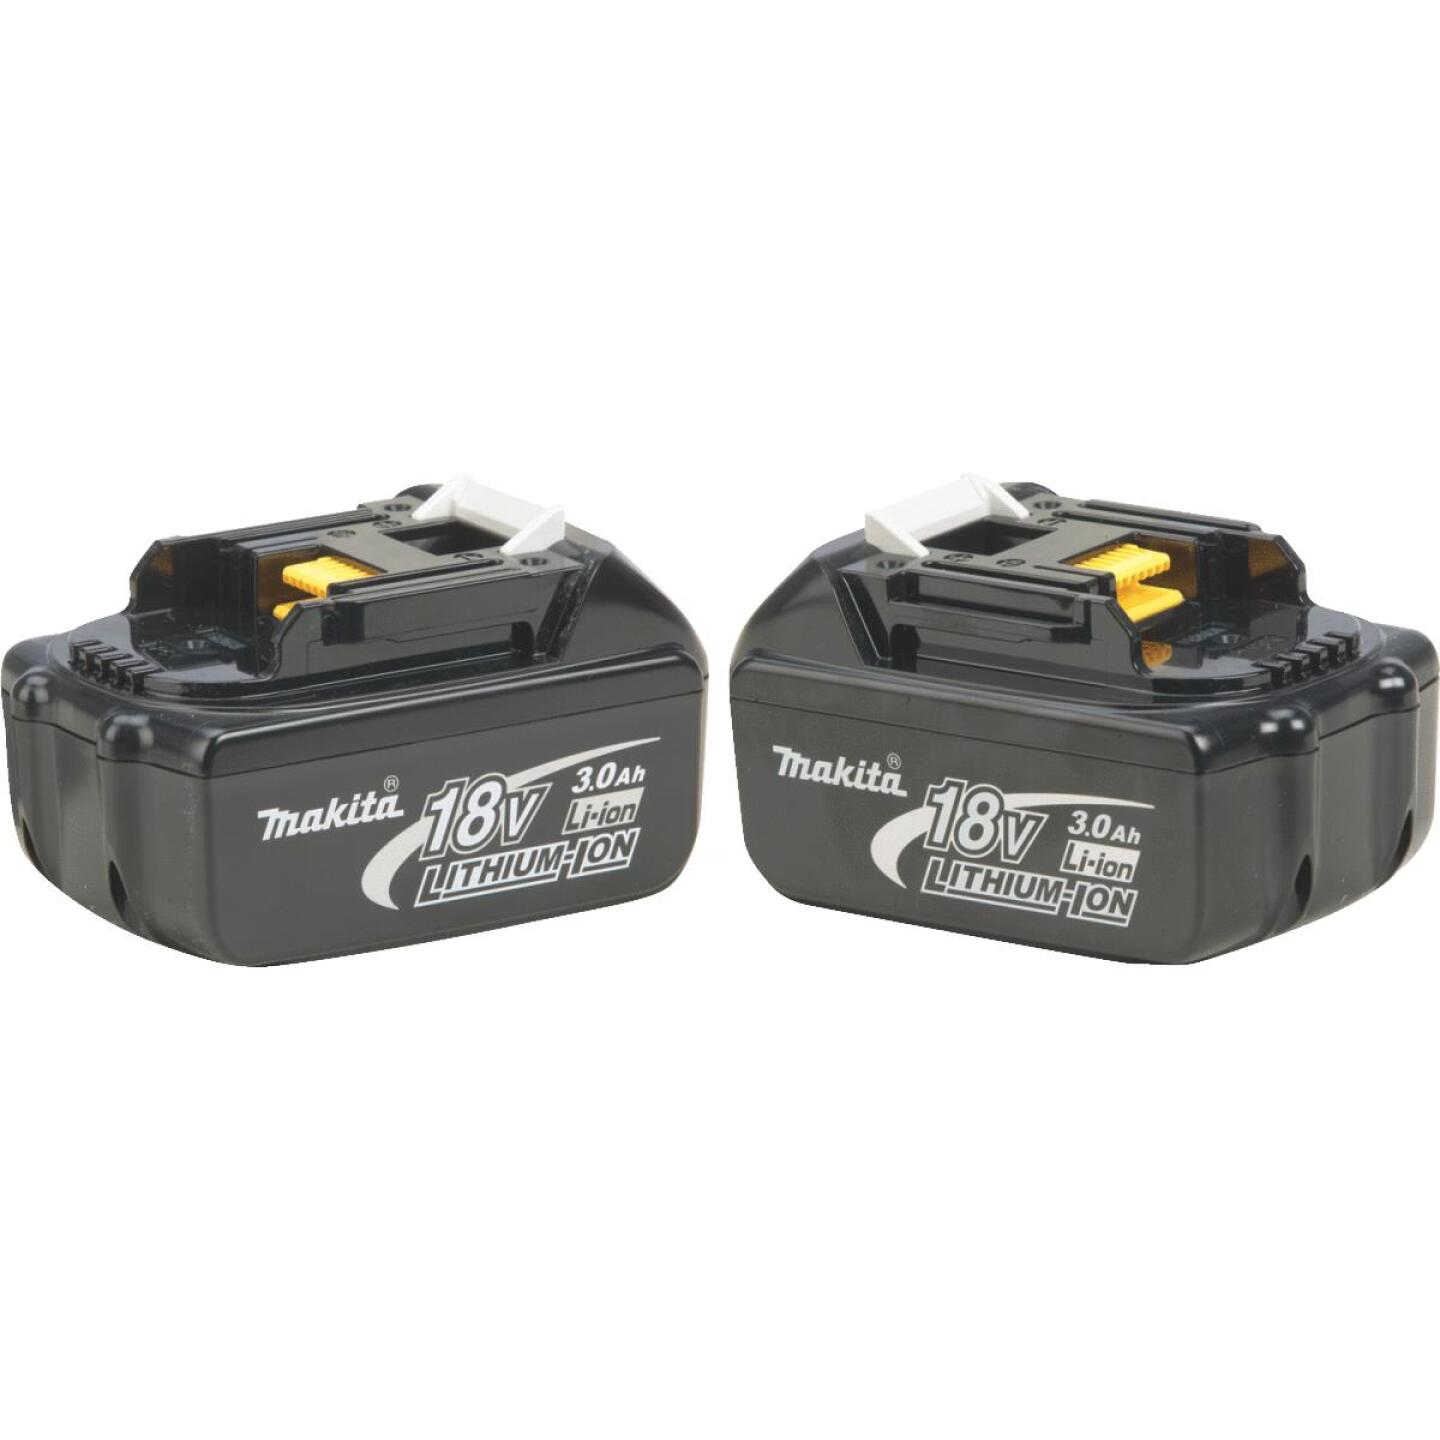 Makita 18 Volt LXT Lithium-Ion 3.0 Ah Tool Battery (2-Pack) Image 1